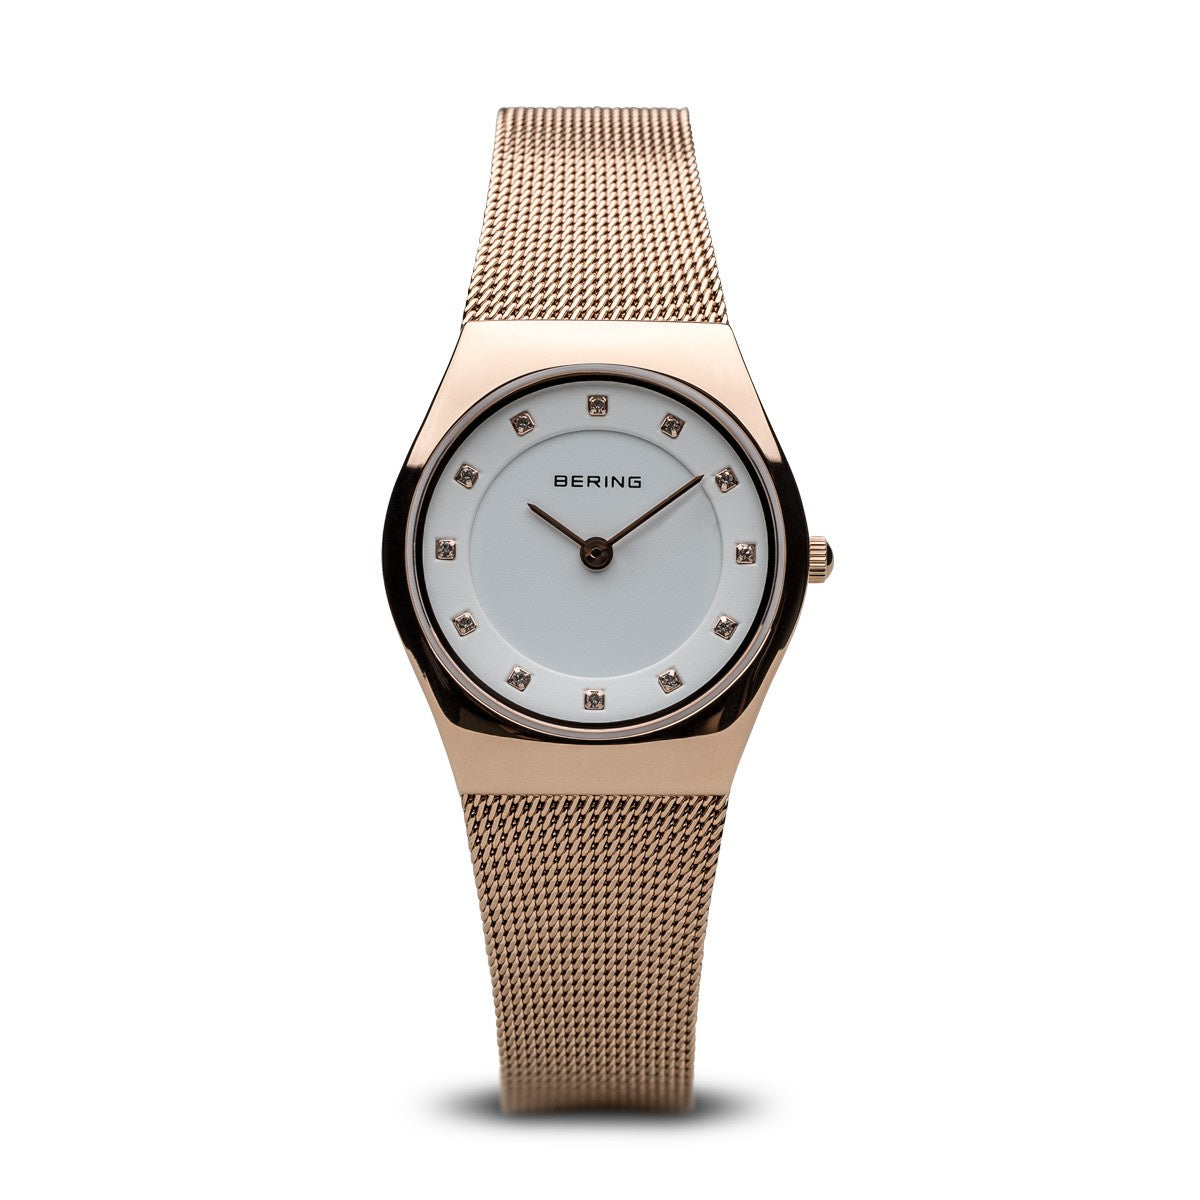 Bering Womens Classic Rose Gold Watch 11927-366 - Robert Openshaw Fine Jewellery